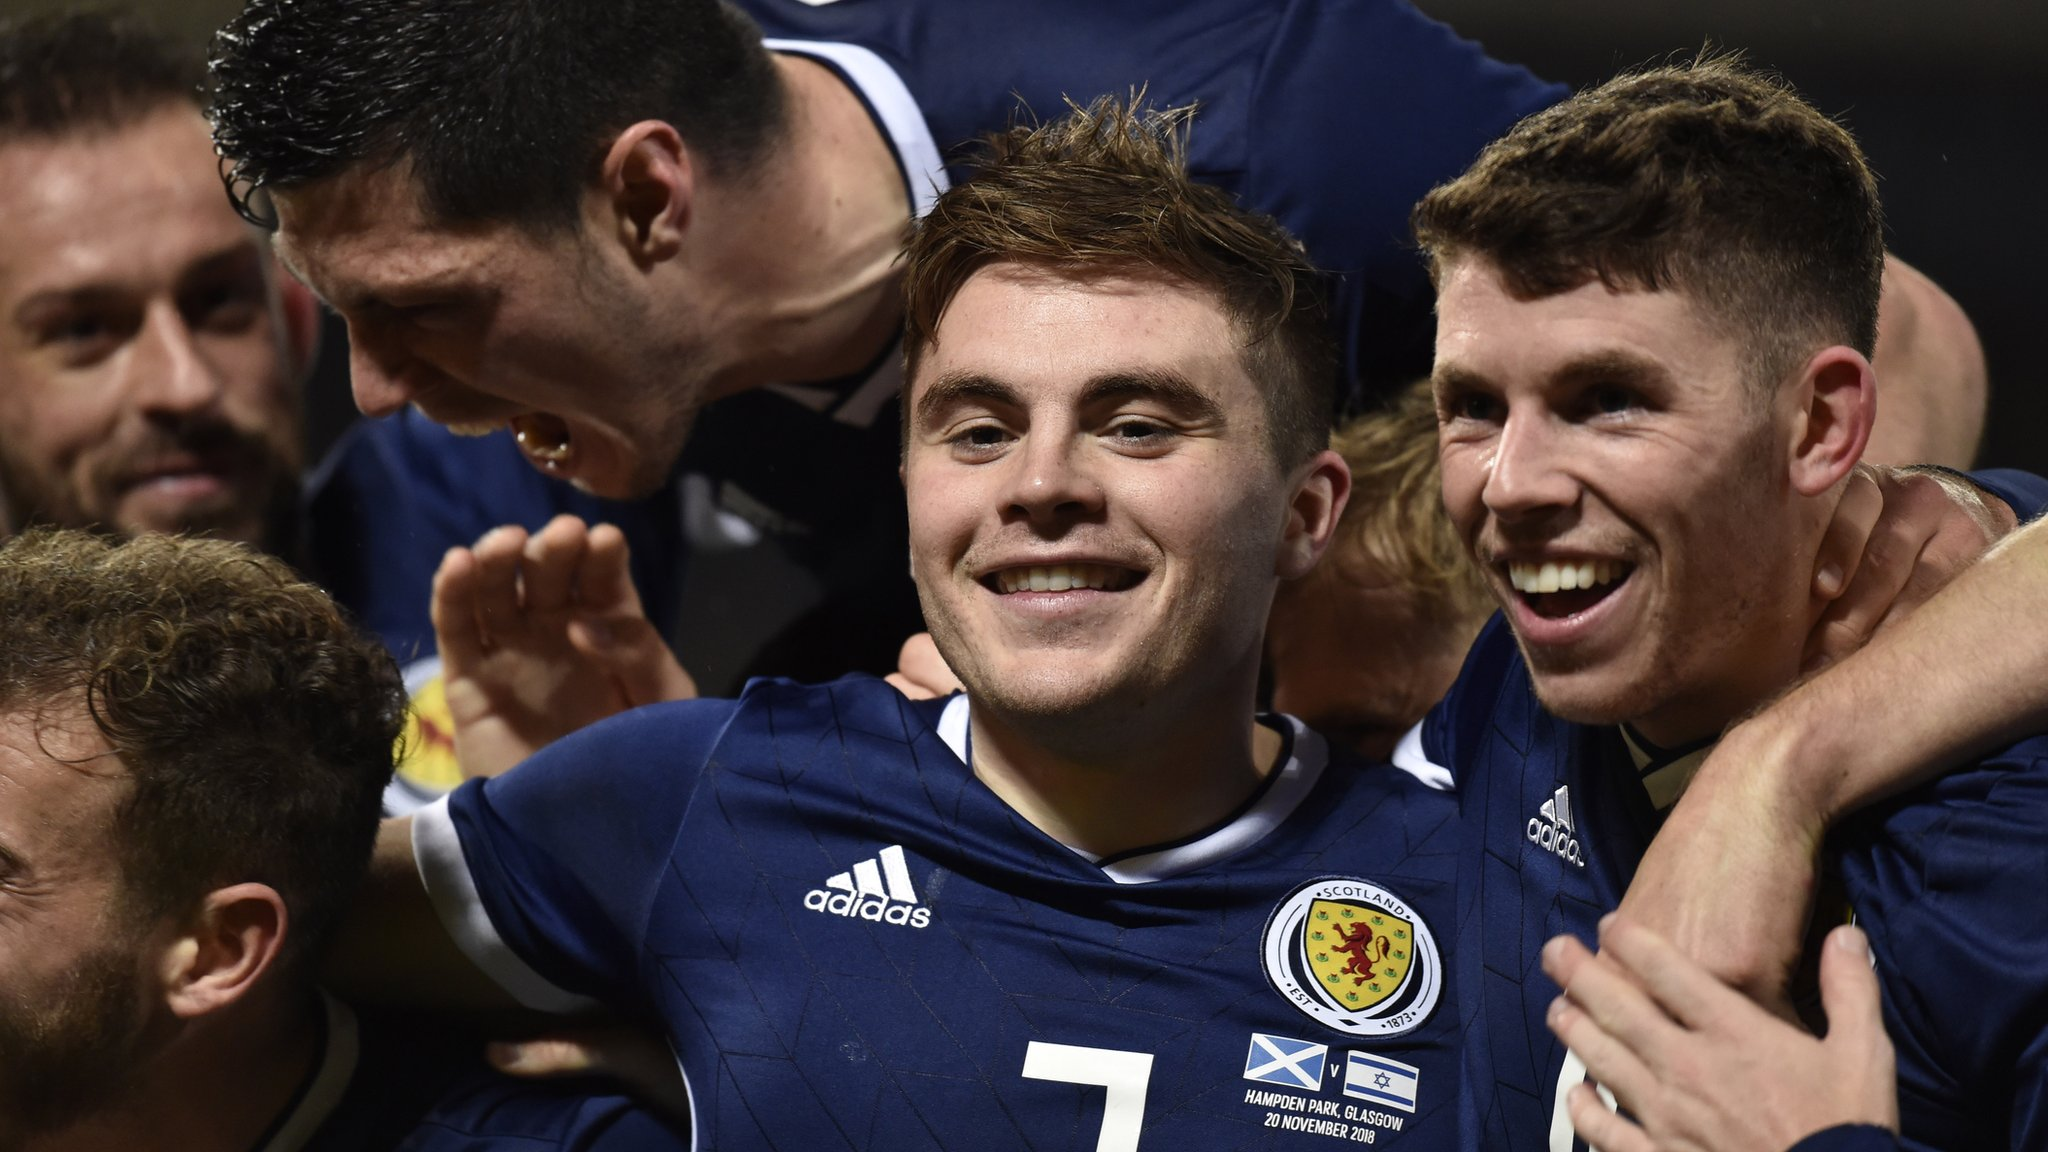 Forrest scores hat-trick as Scotland win to top Nations League group